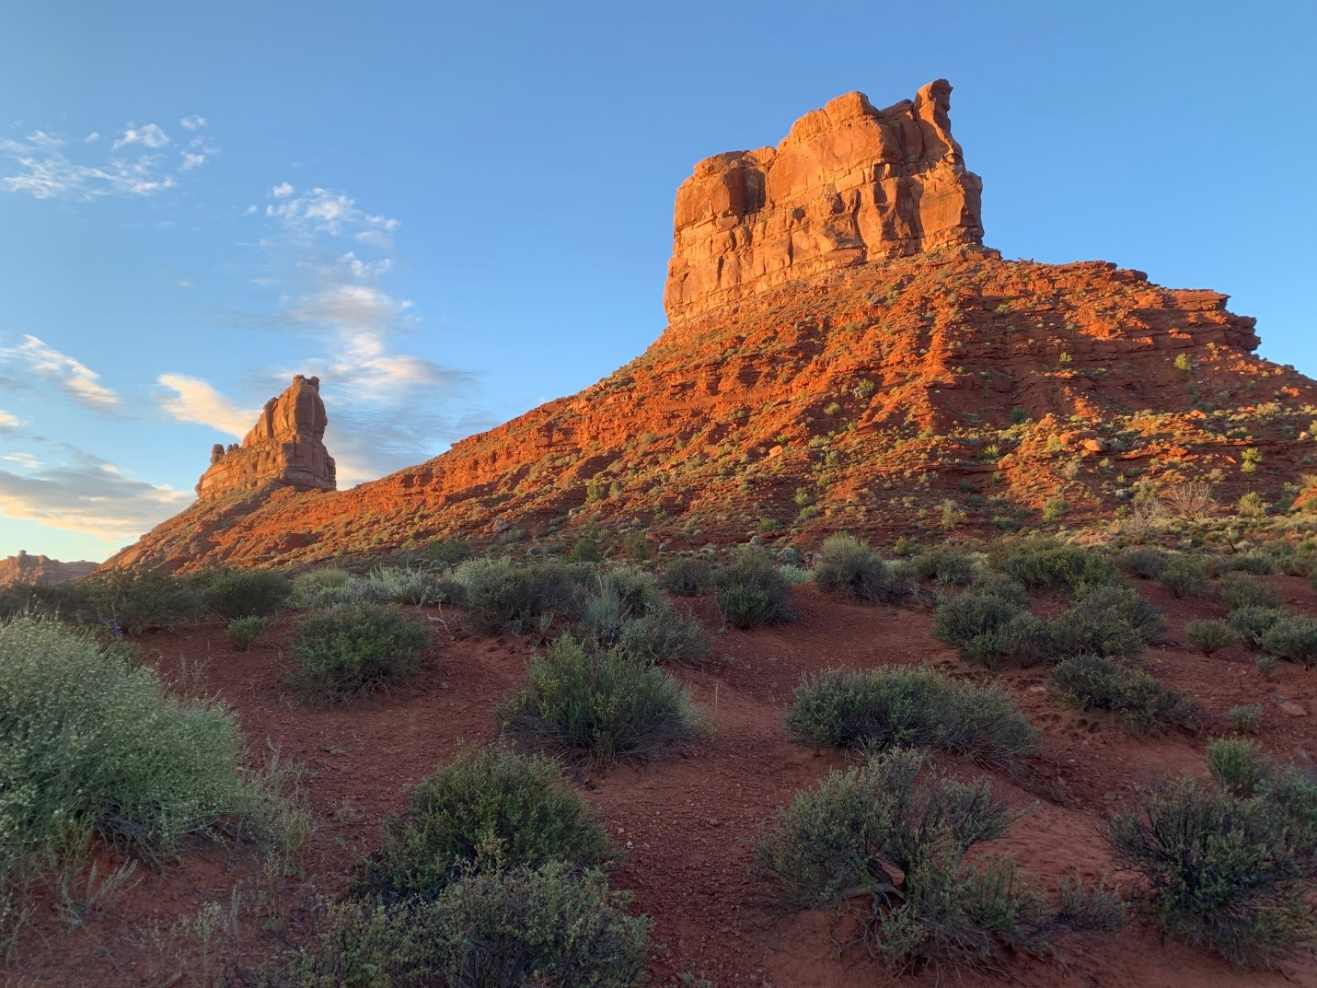 a huge red rock tower sticks up on the horizon with a characteristic utah view